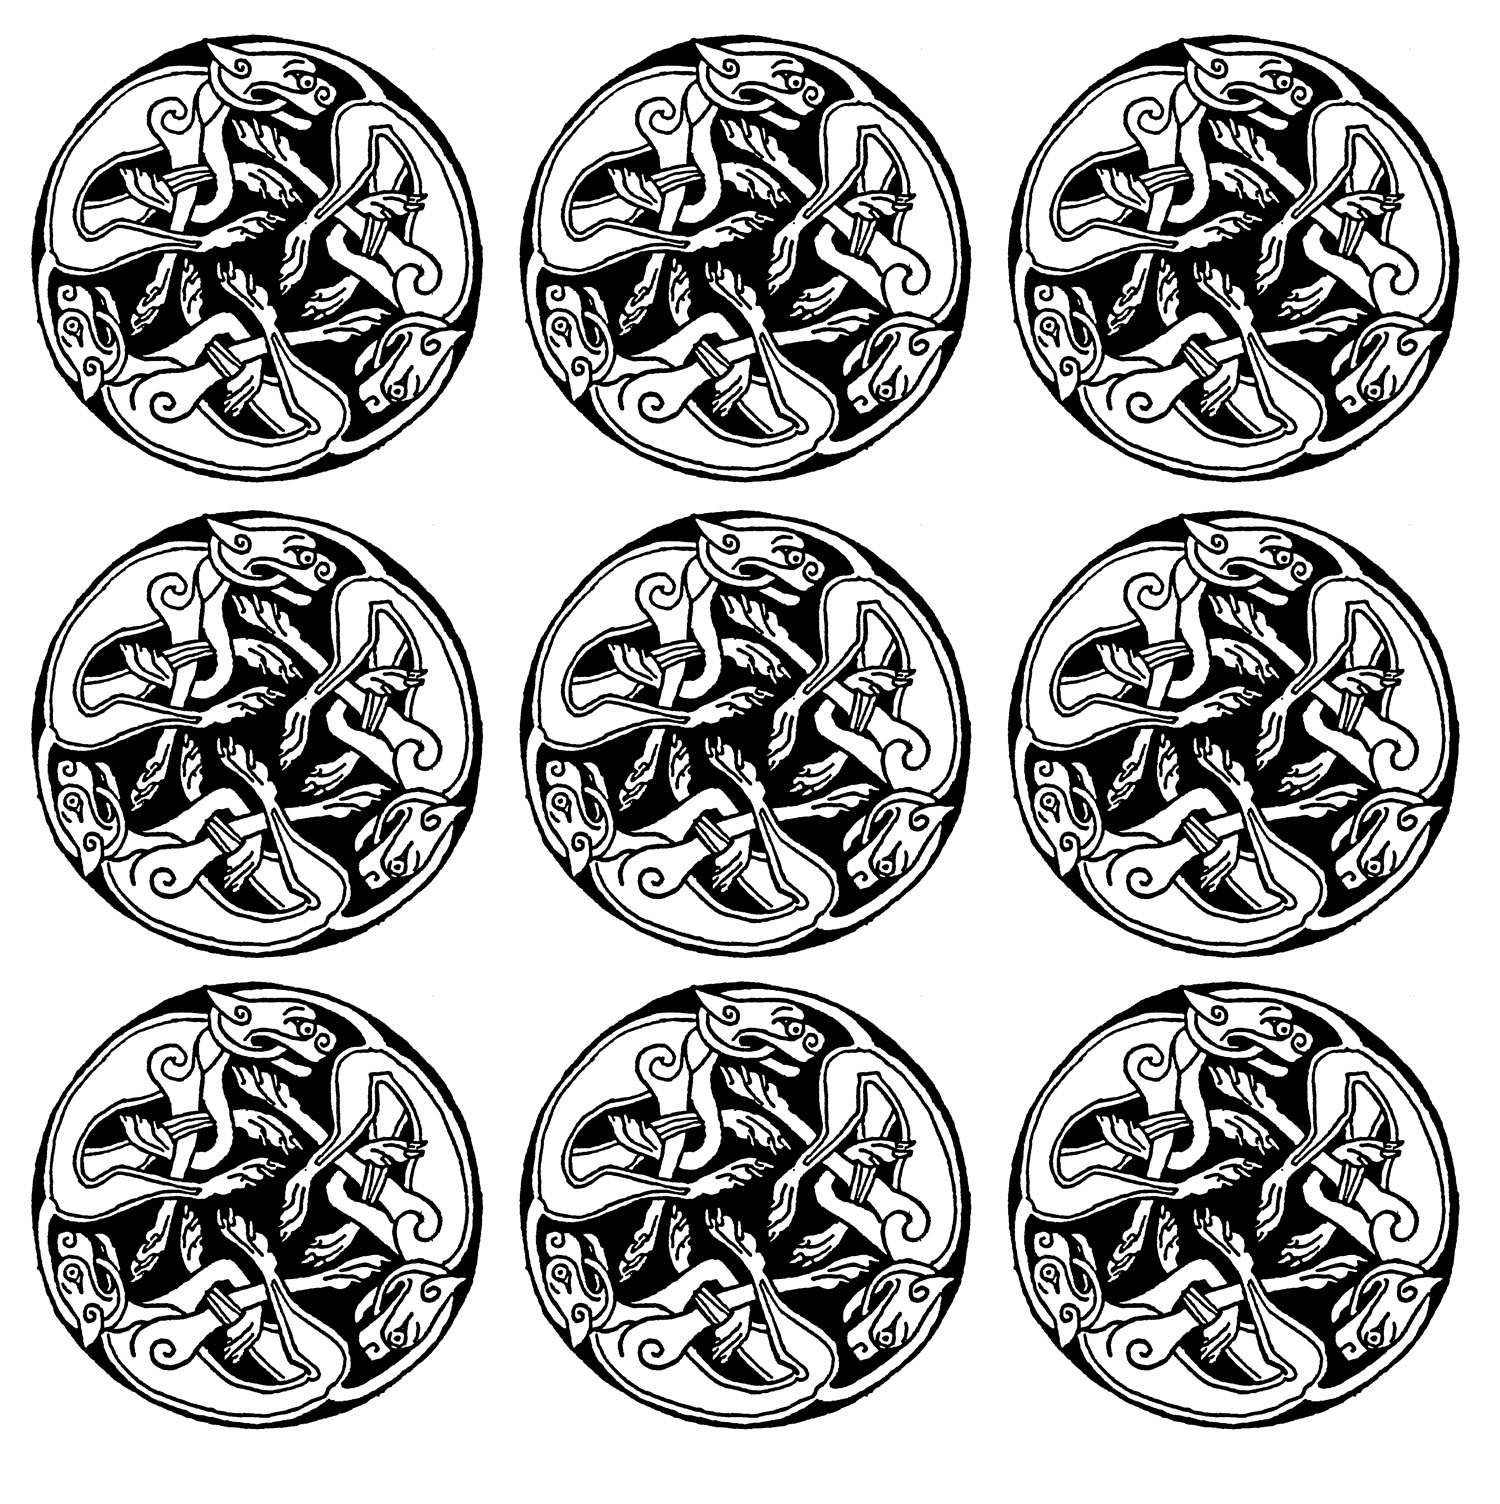 9 repeated patterns representing gargoyles ... A kind of Mandala of the Middle Ages quite intriguing